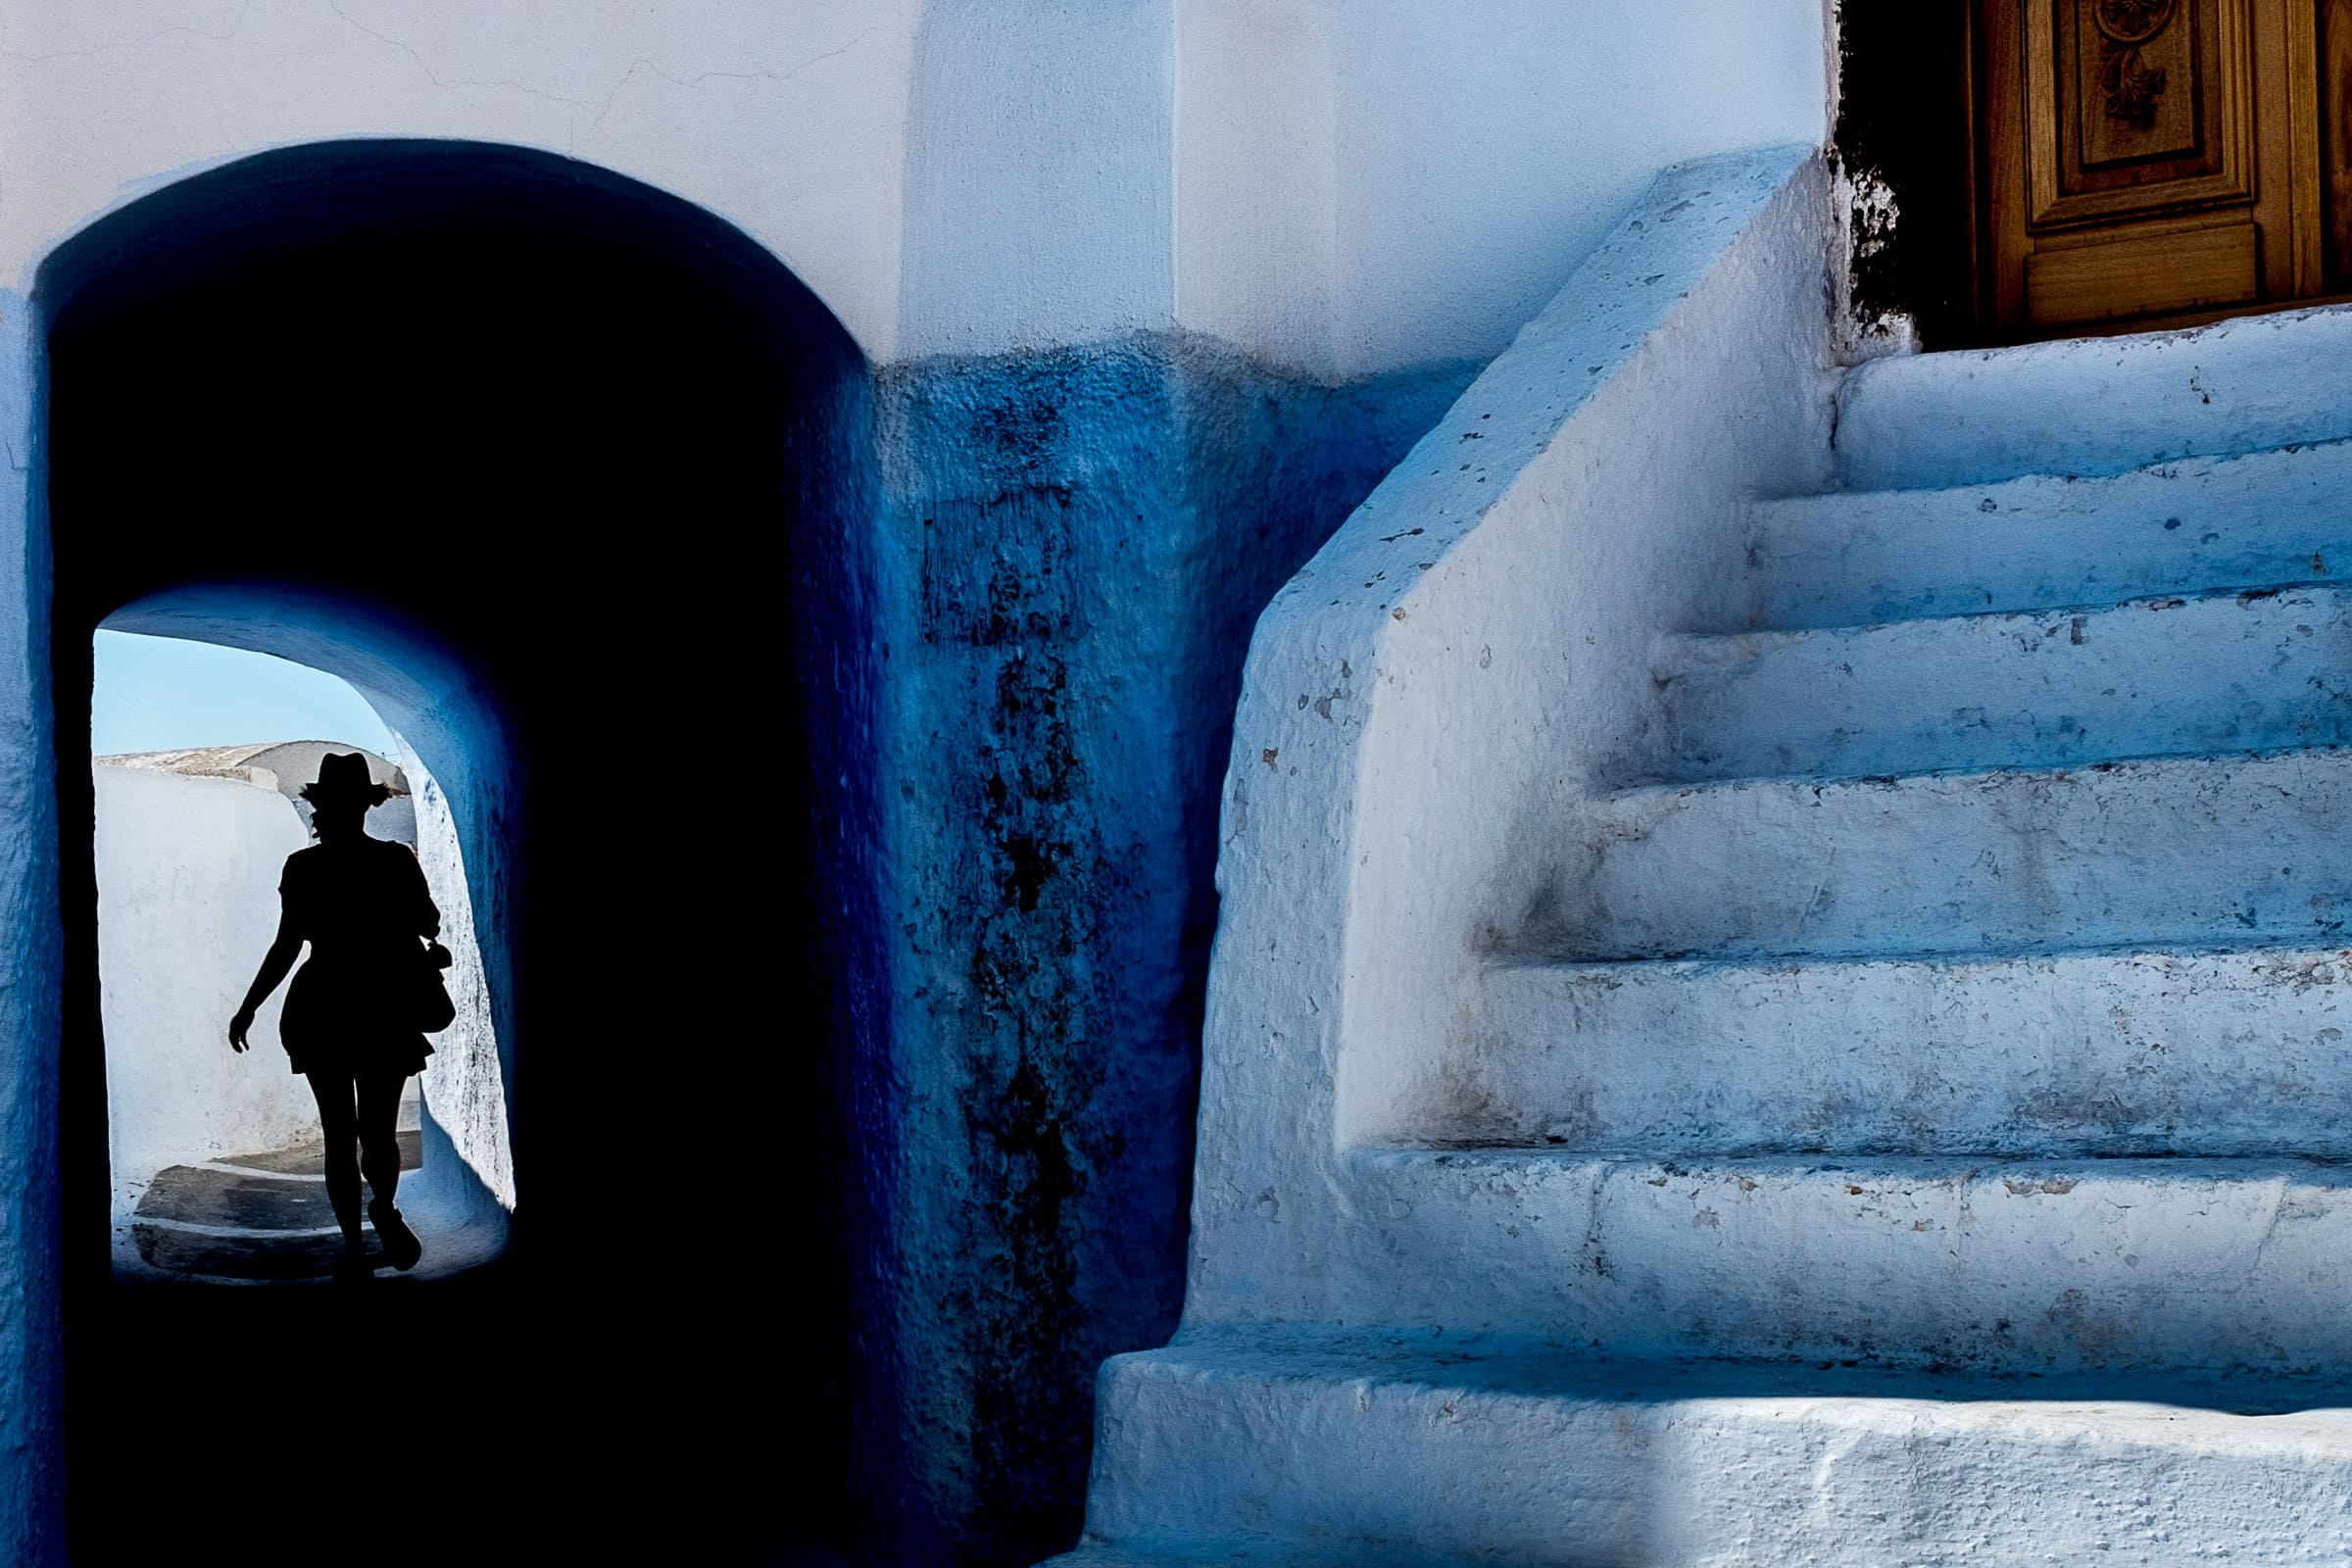 Gorgeous story telling silhouette photo of a photographer walking through a tunnel while exploring Santorini Engagement photo ideas